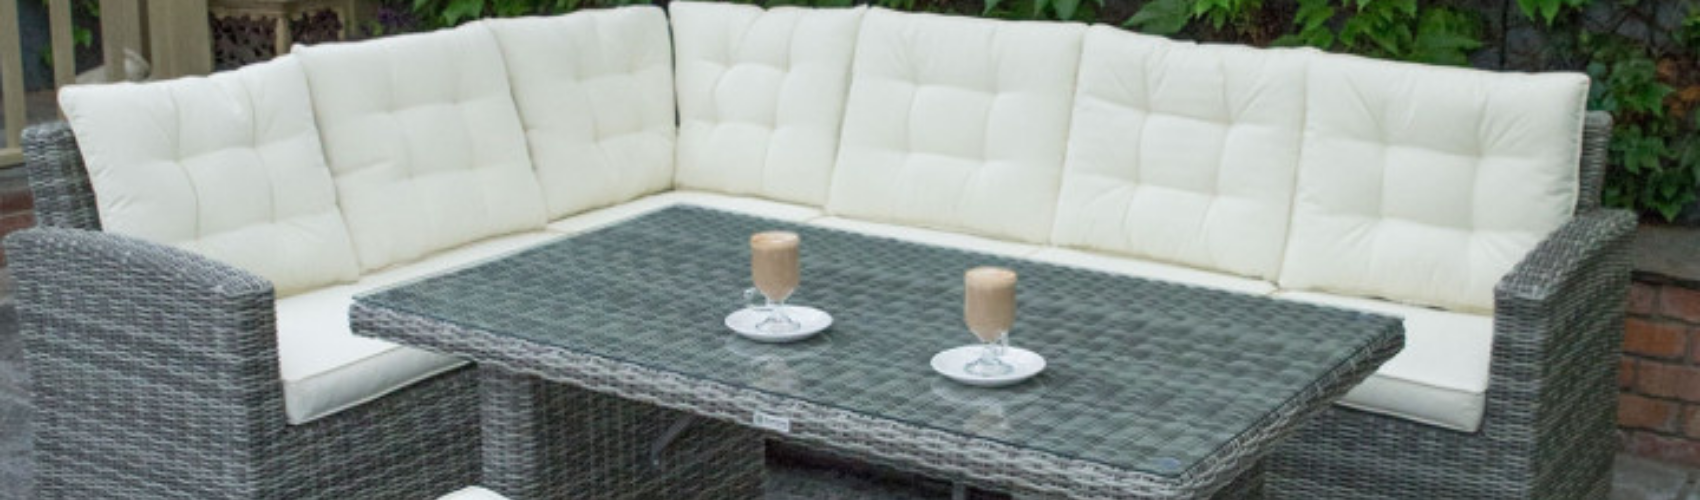 Things to think about when purchasing garden furniture